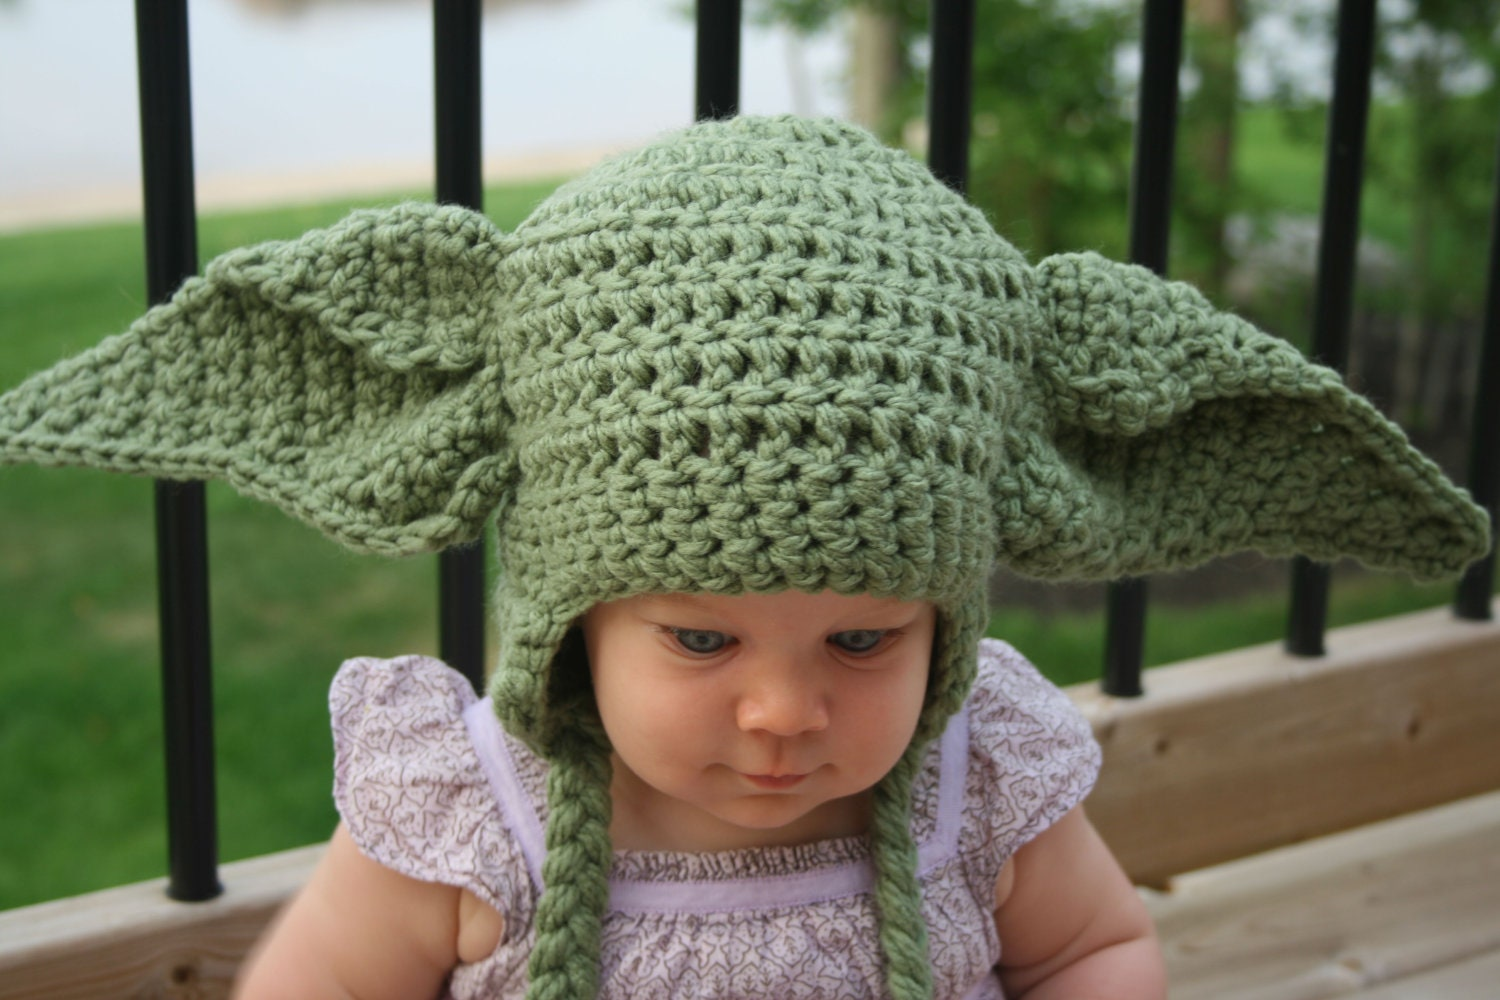 yoda ears hat knitting pattern generator